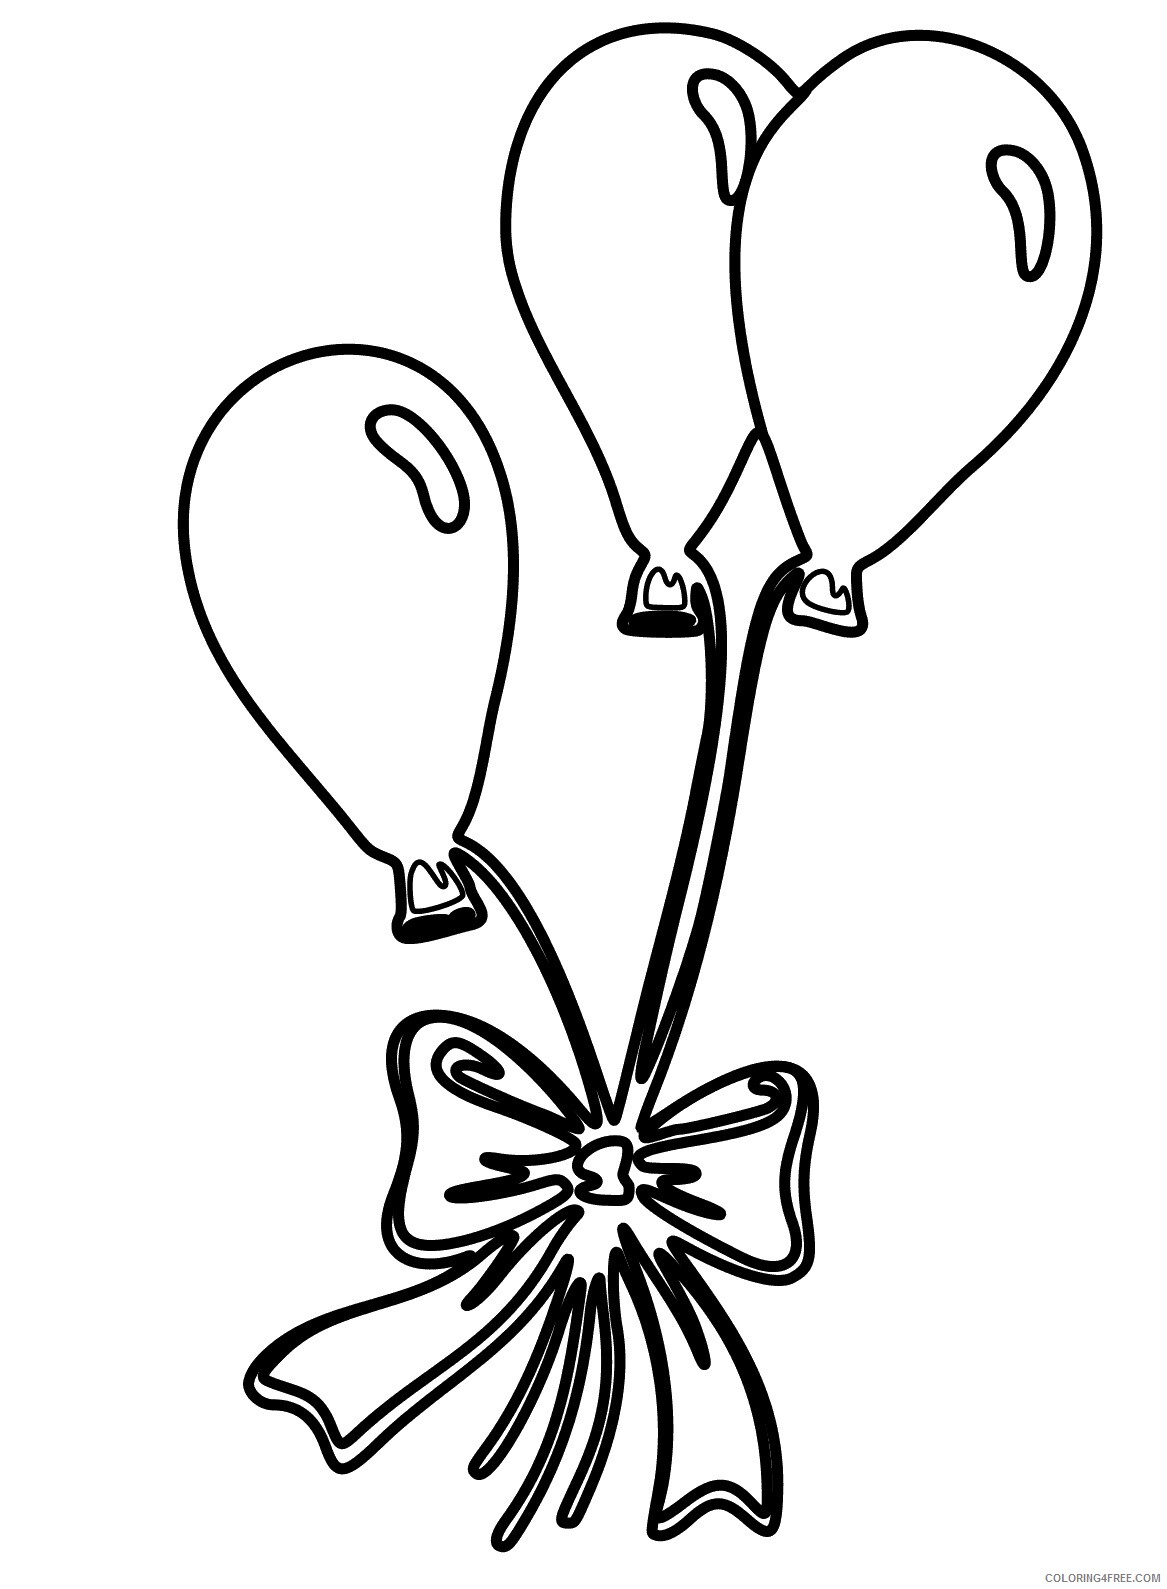 Balloons Coloring Pages for Kids Gift of Balloons Printable 2021 040 Coloring4free